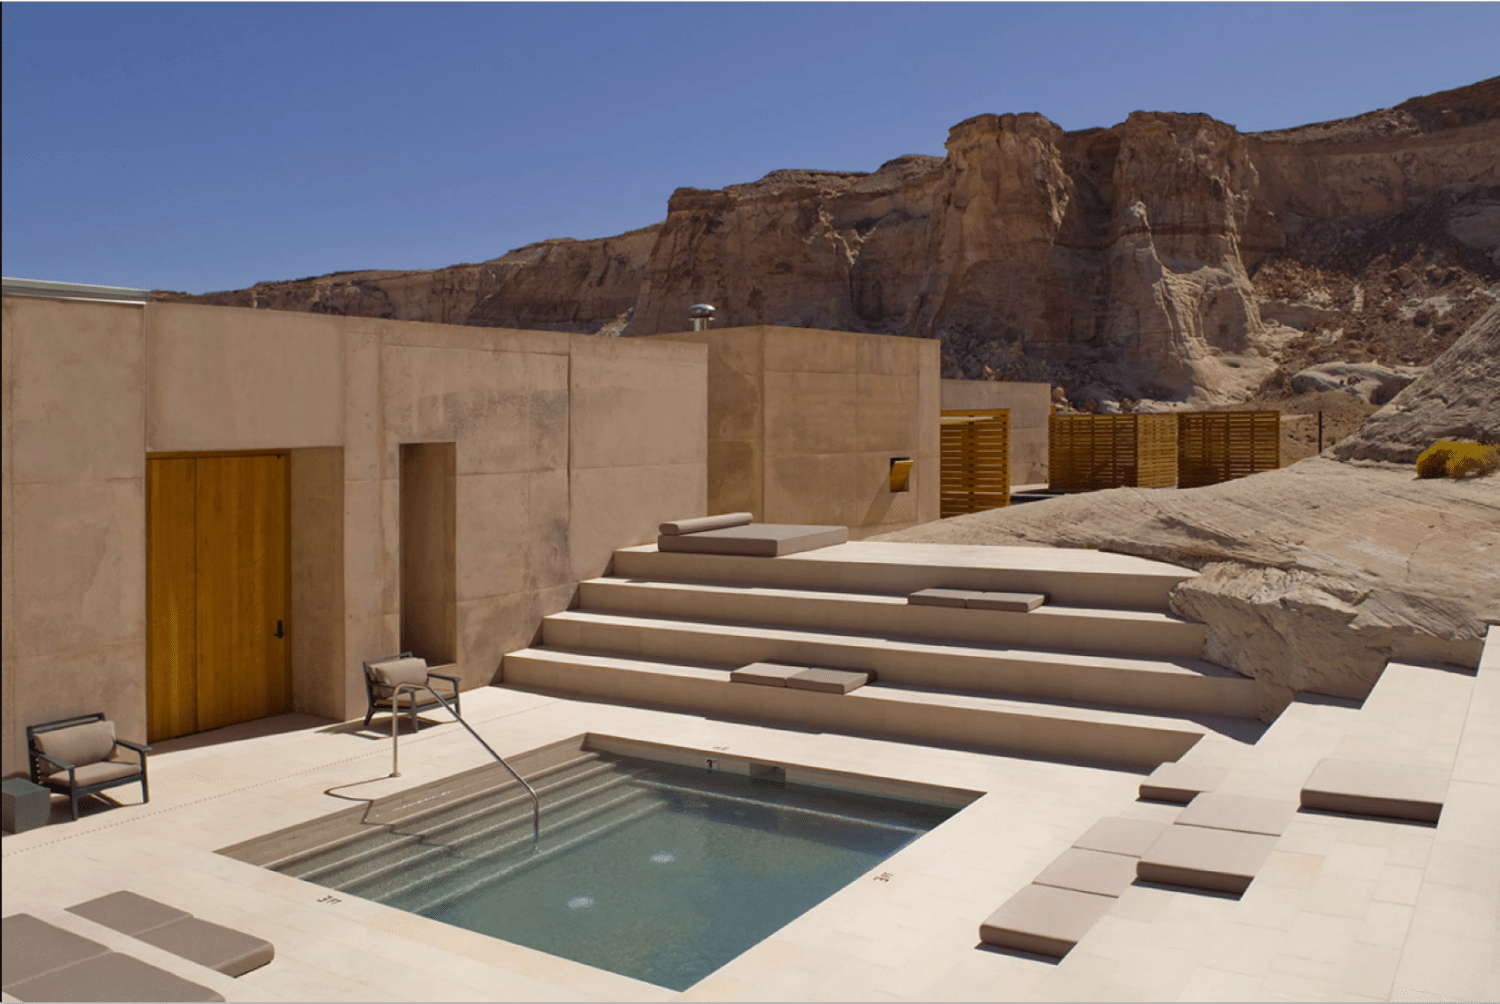 These stunning luxury desert hotels are a cool way to beat the heat